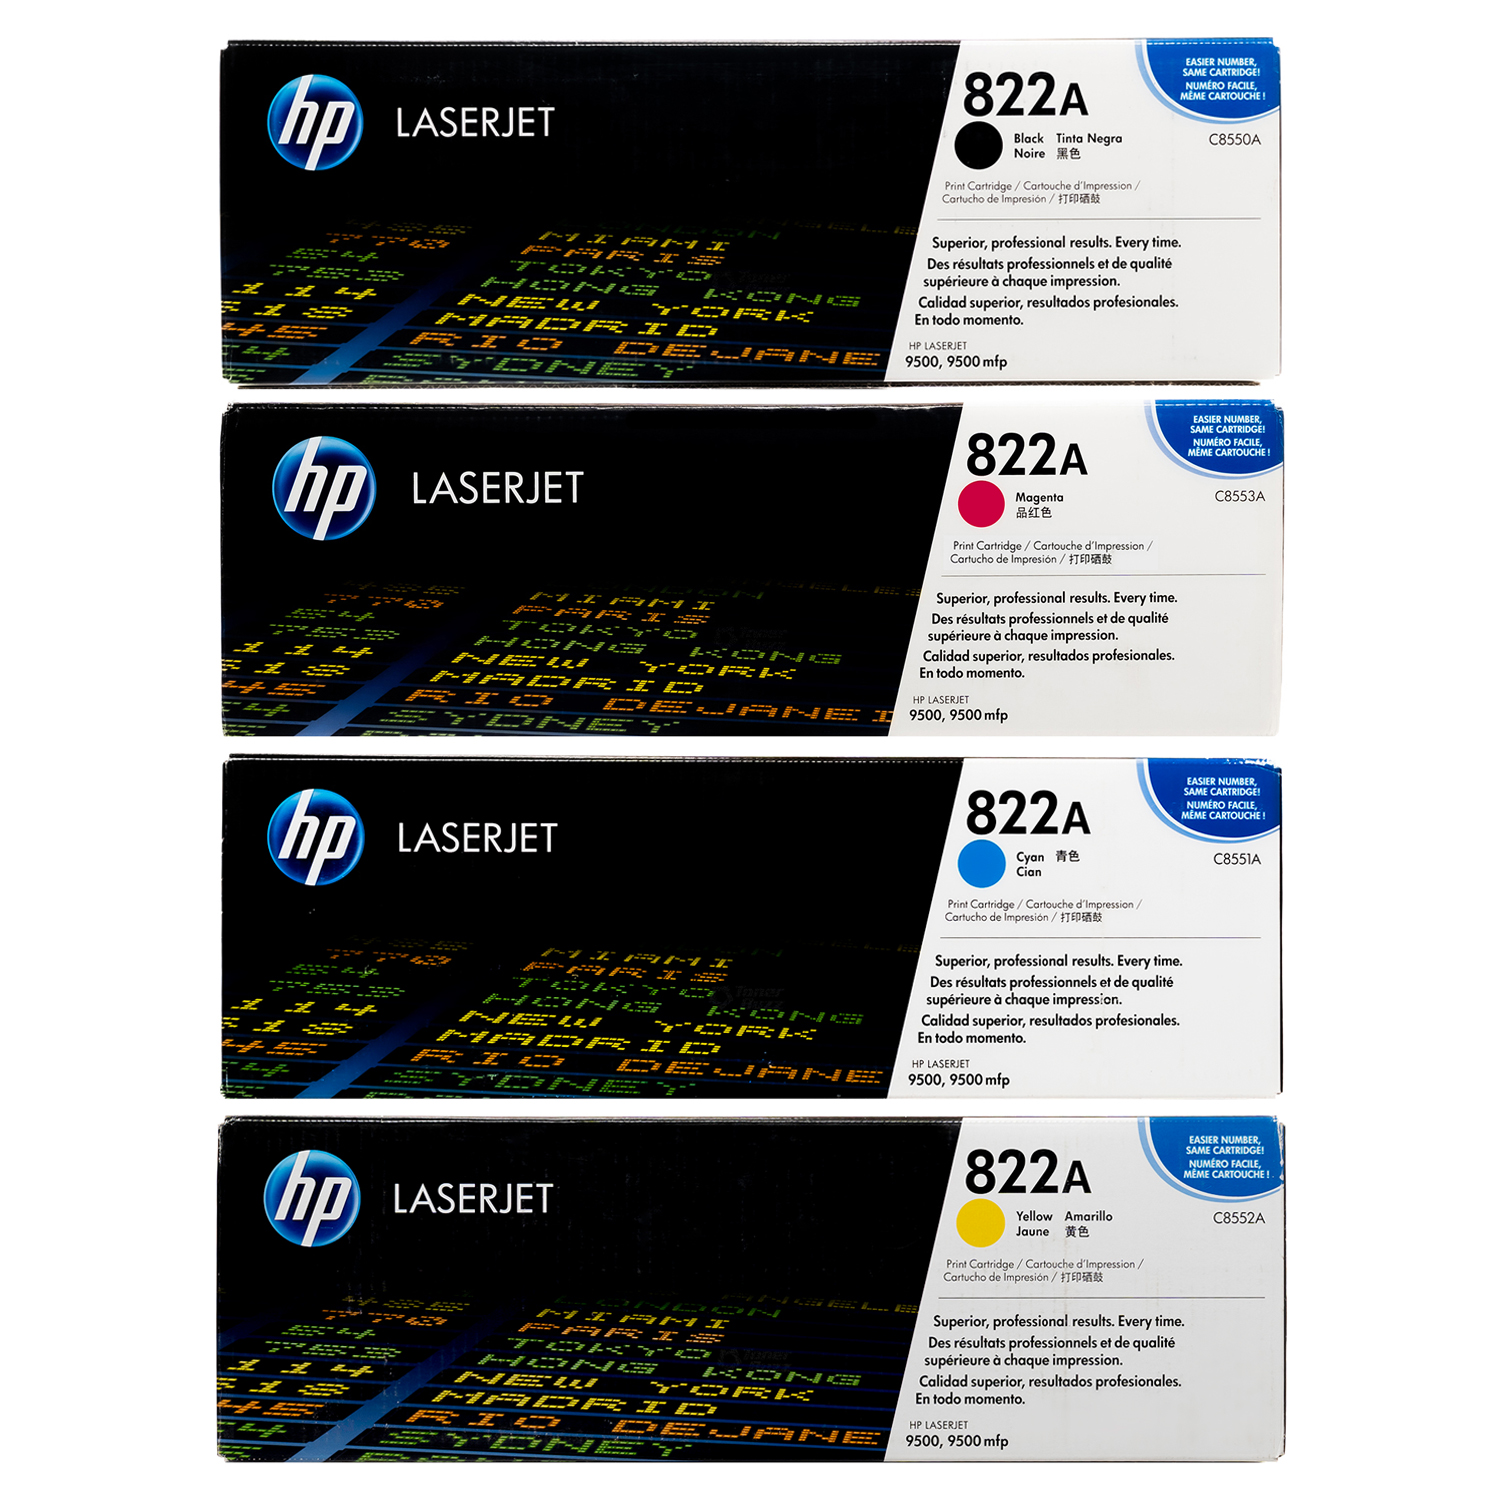 HP 822A Toner SET | C8550A C8551A C8552A C8553A | Original HP Toner Cartridge - Black, Cyan, Yellow, Magenta